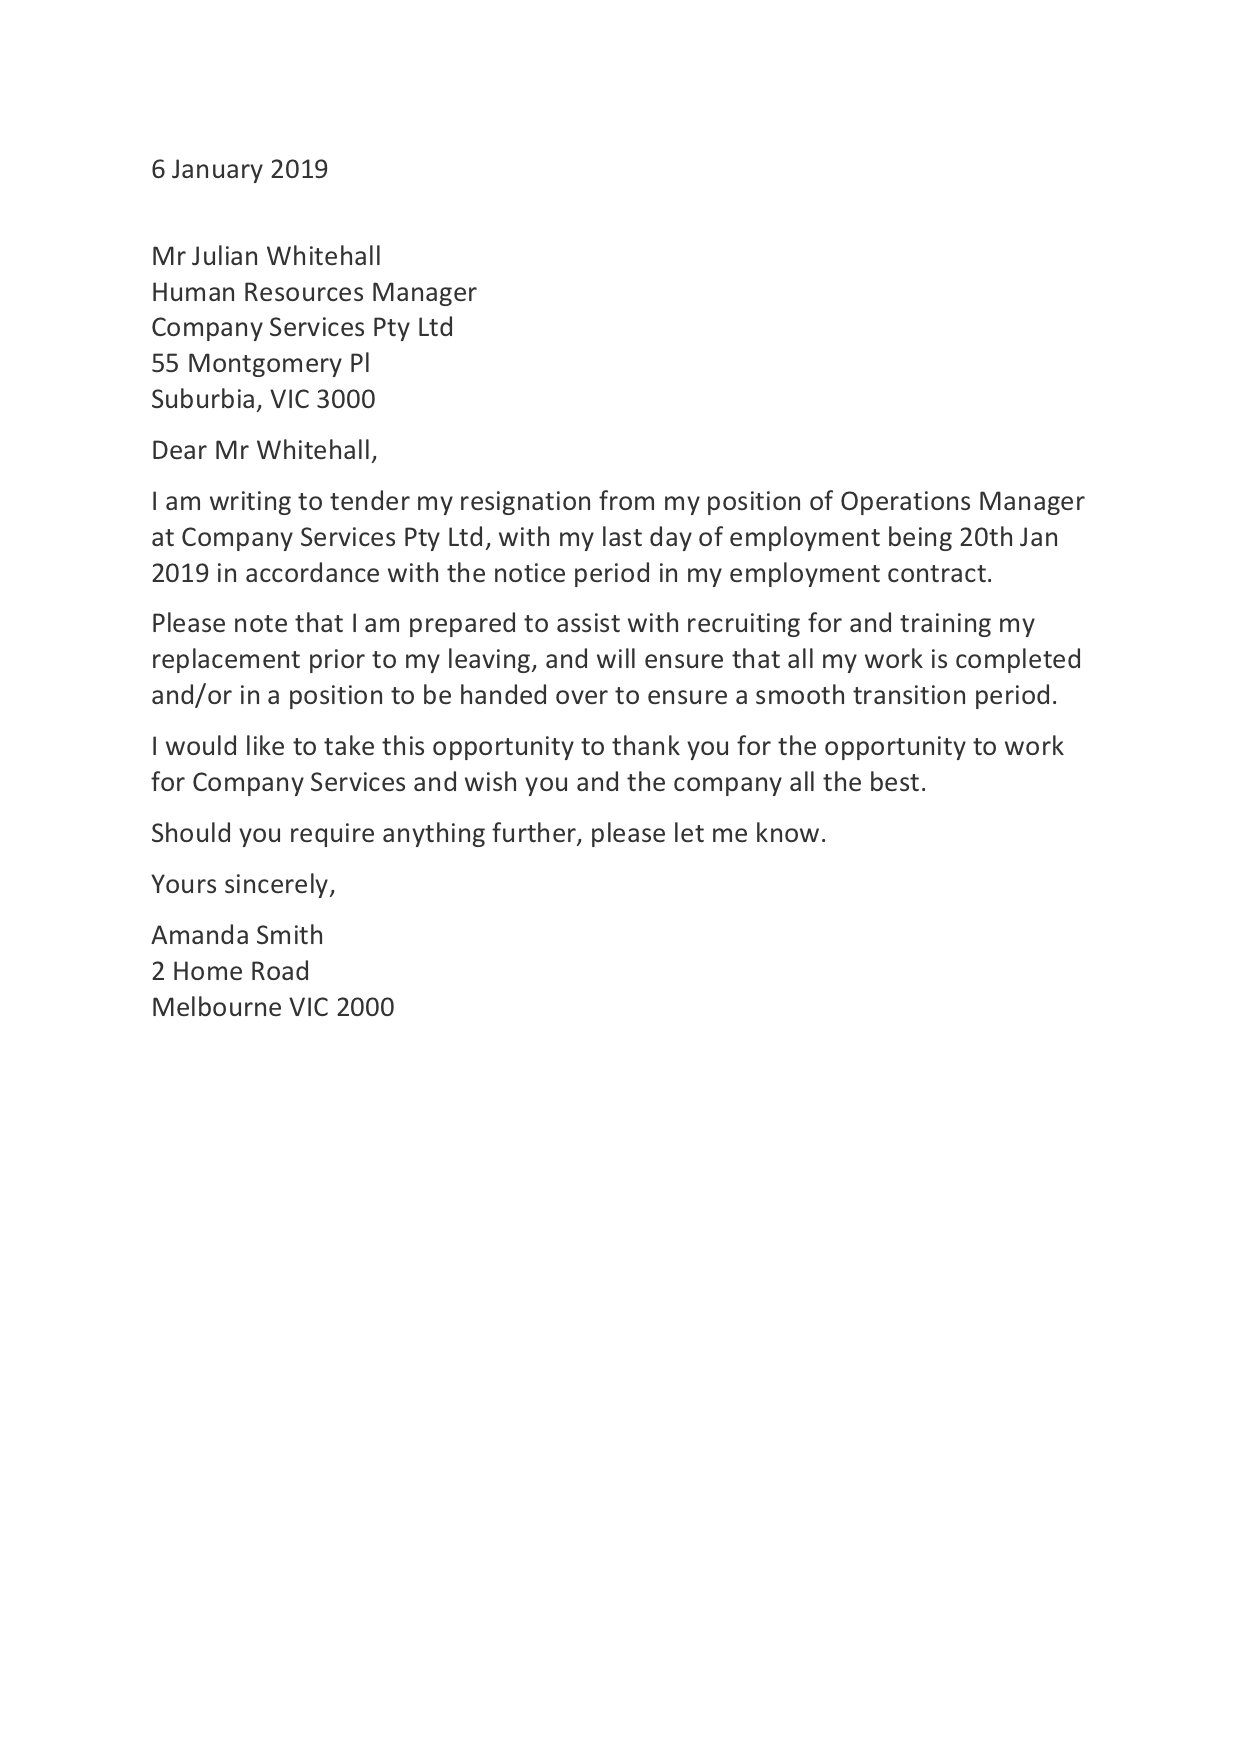 Resignation Letter Family Reasons from www.training.com.au